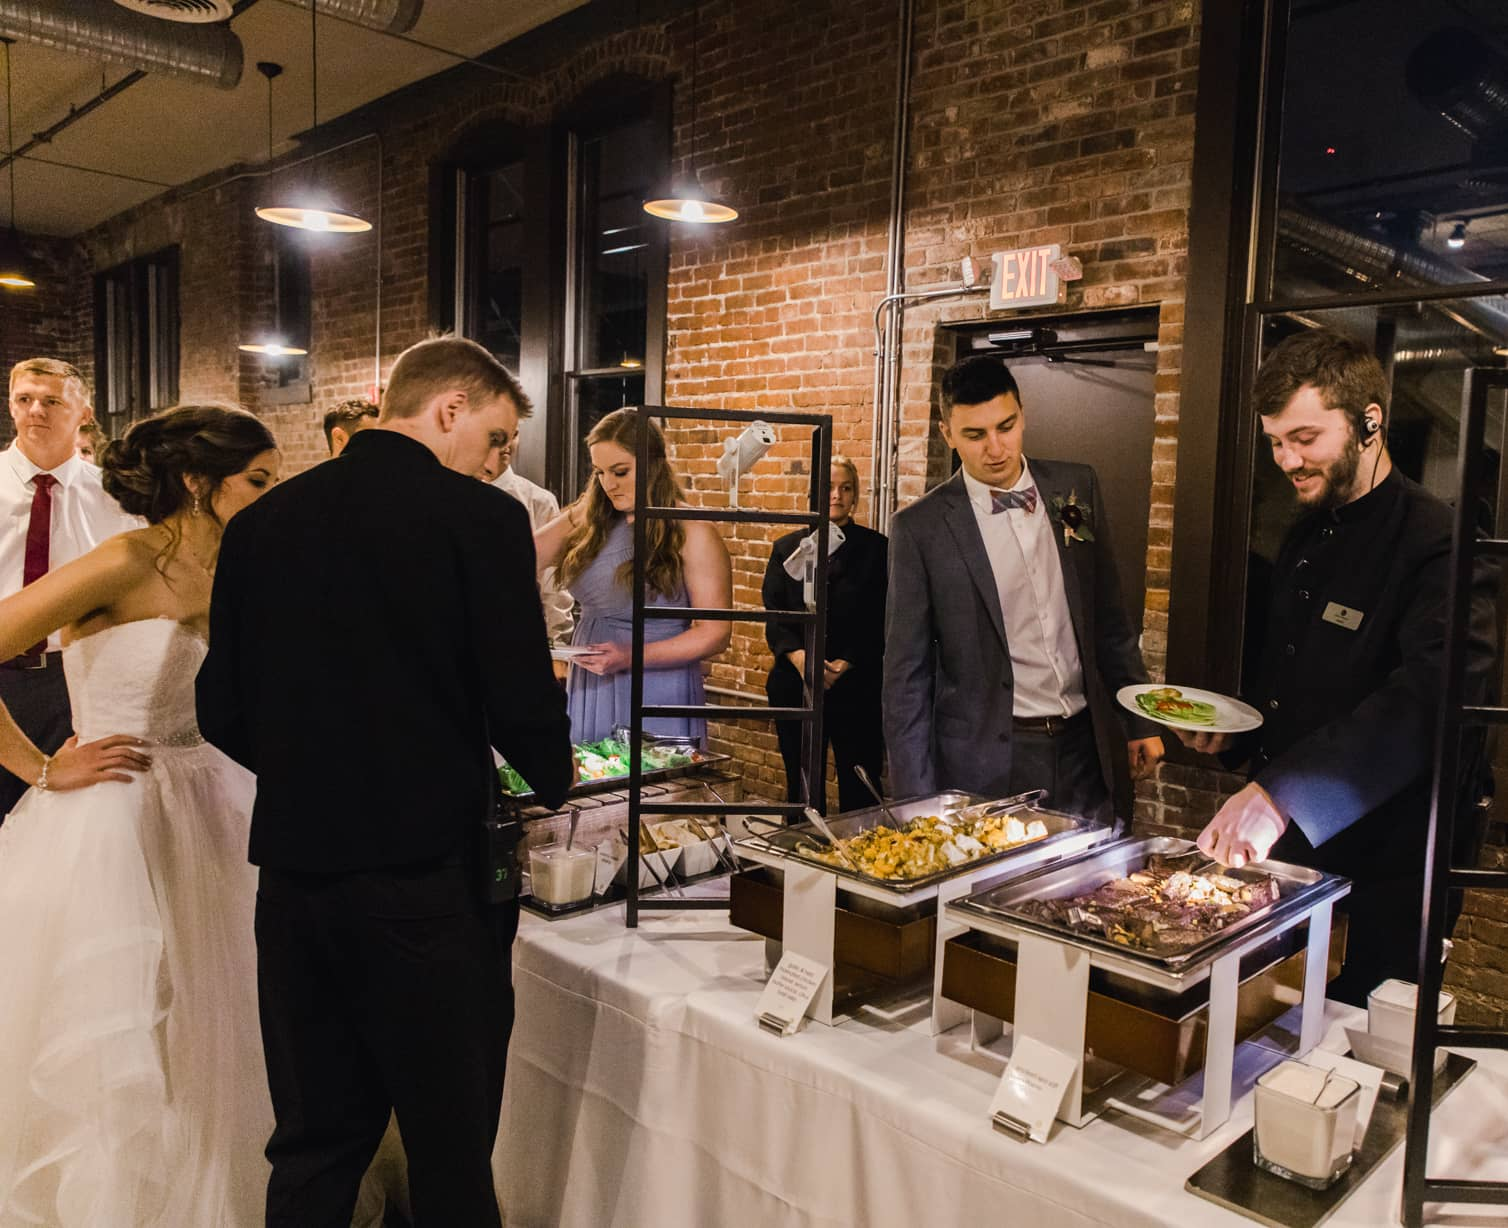 Premium catering at a wedding at the Neidhammer in Indianapolis